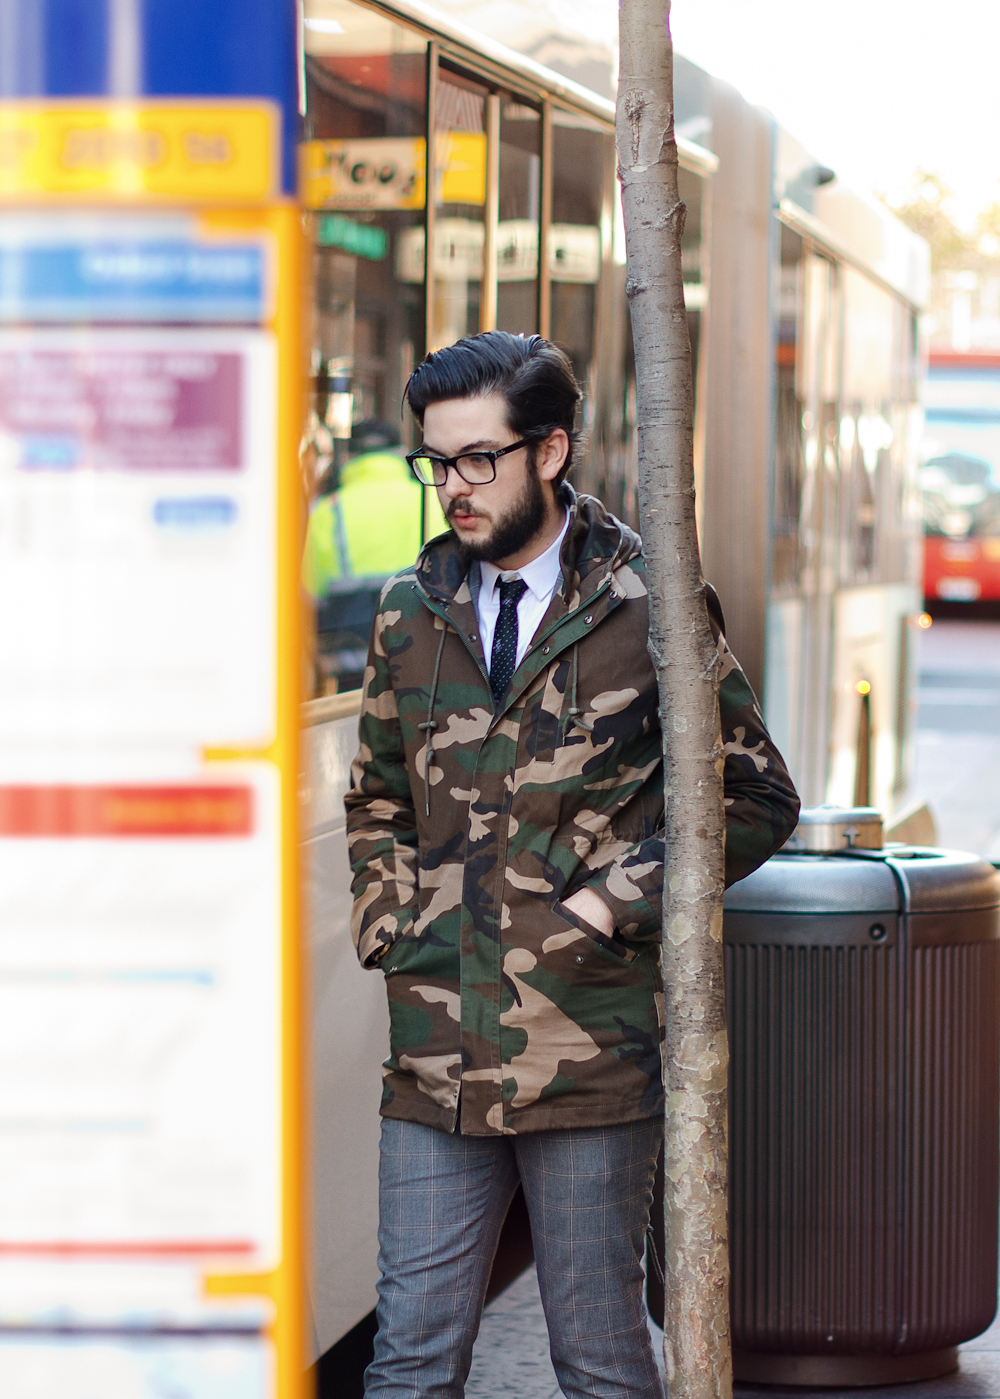 Camo in the city. Similar look: Suit Two Tone Fisherman Jacket.